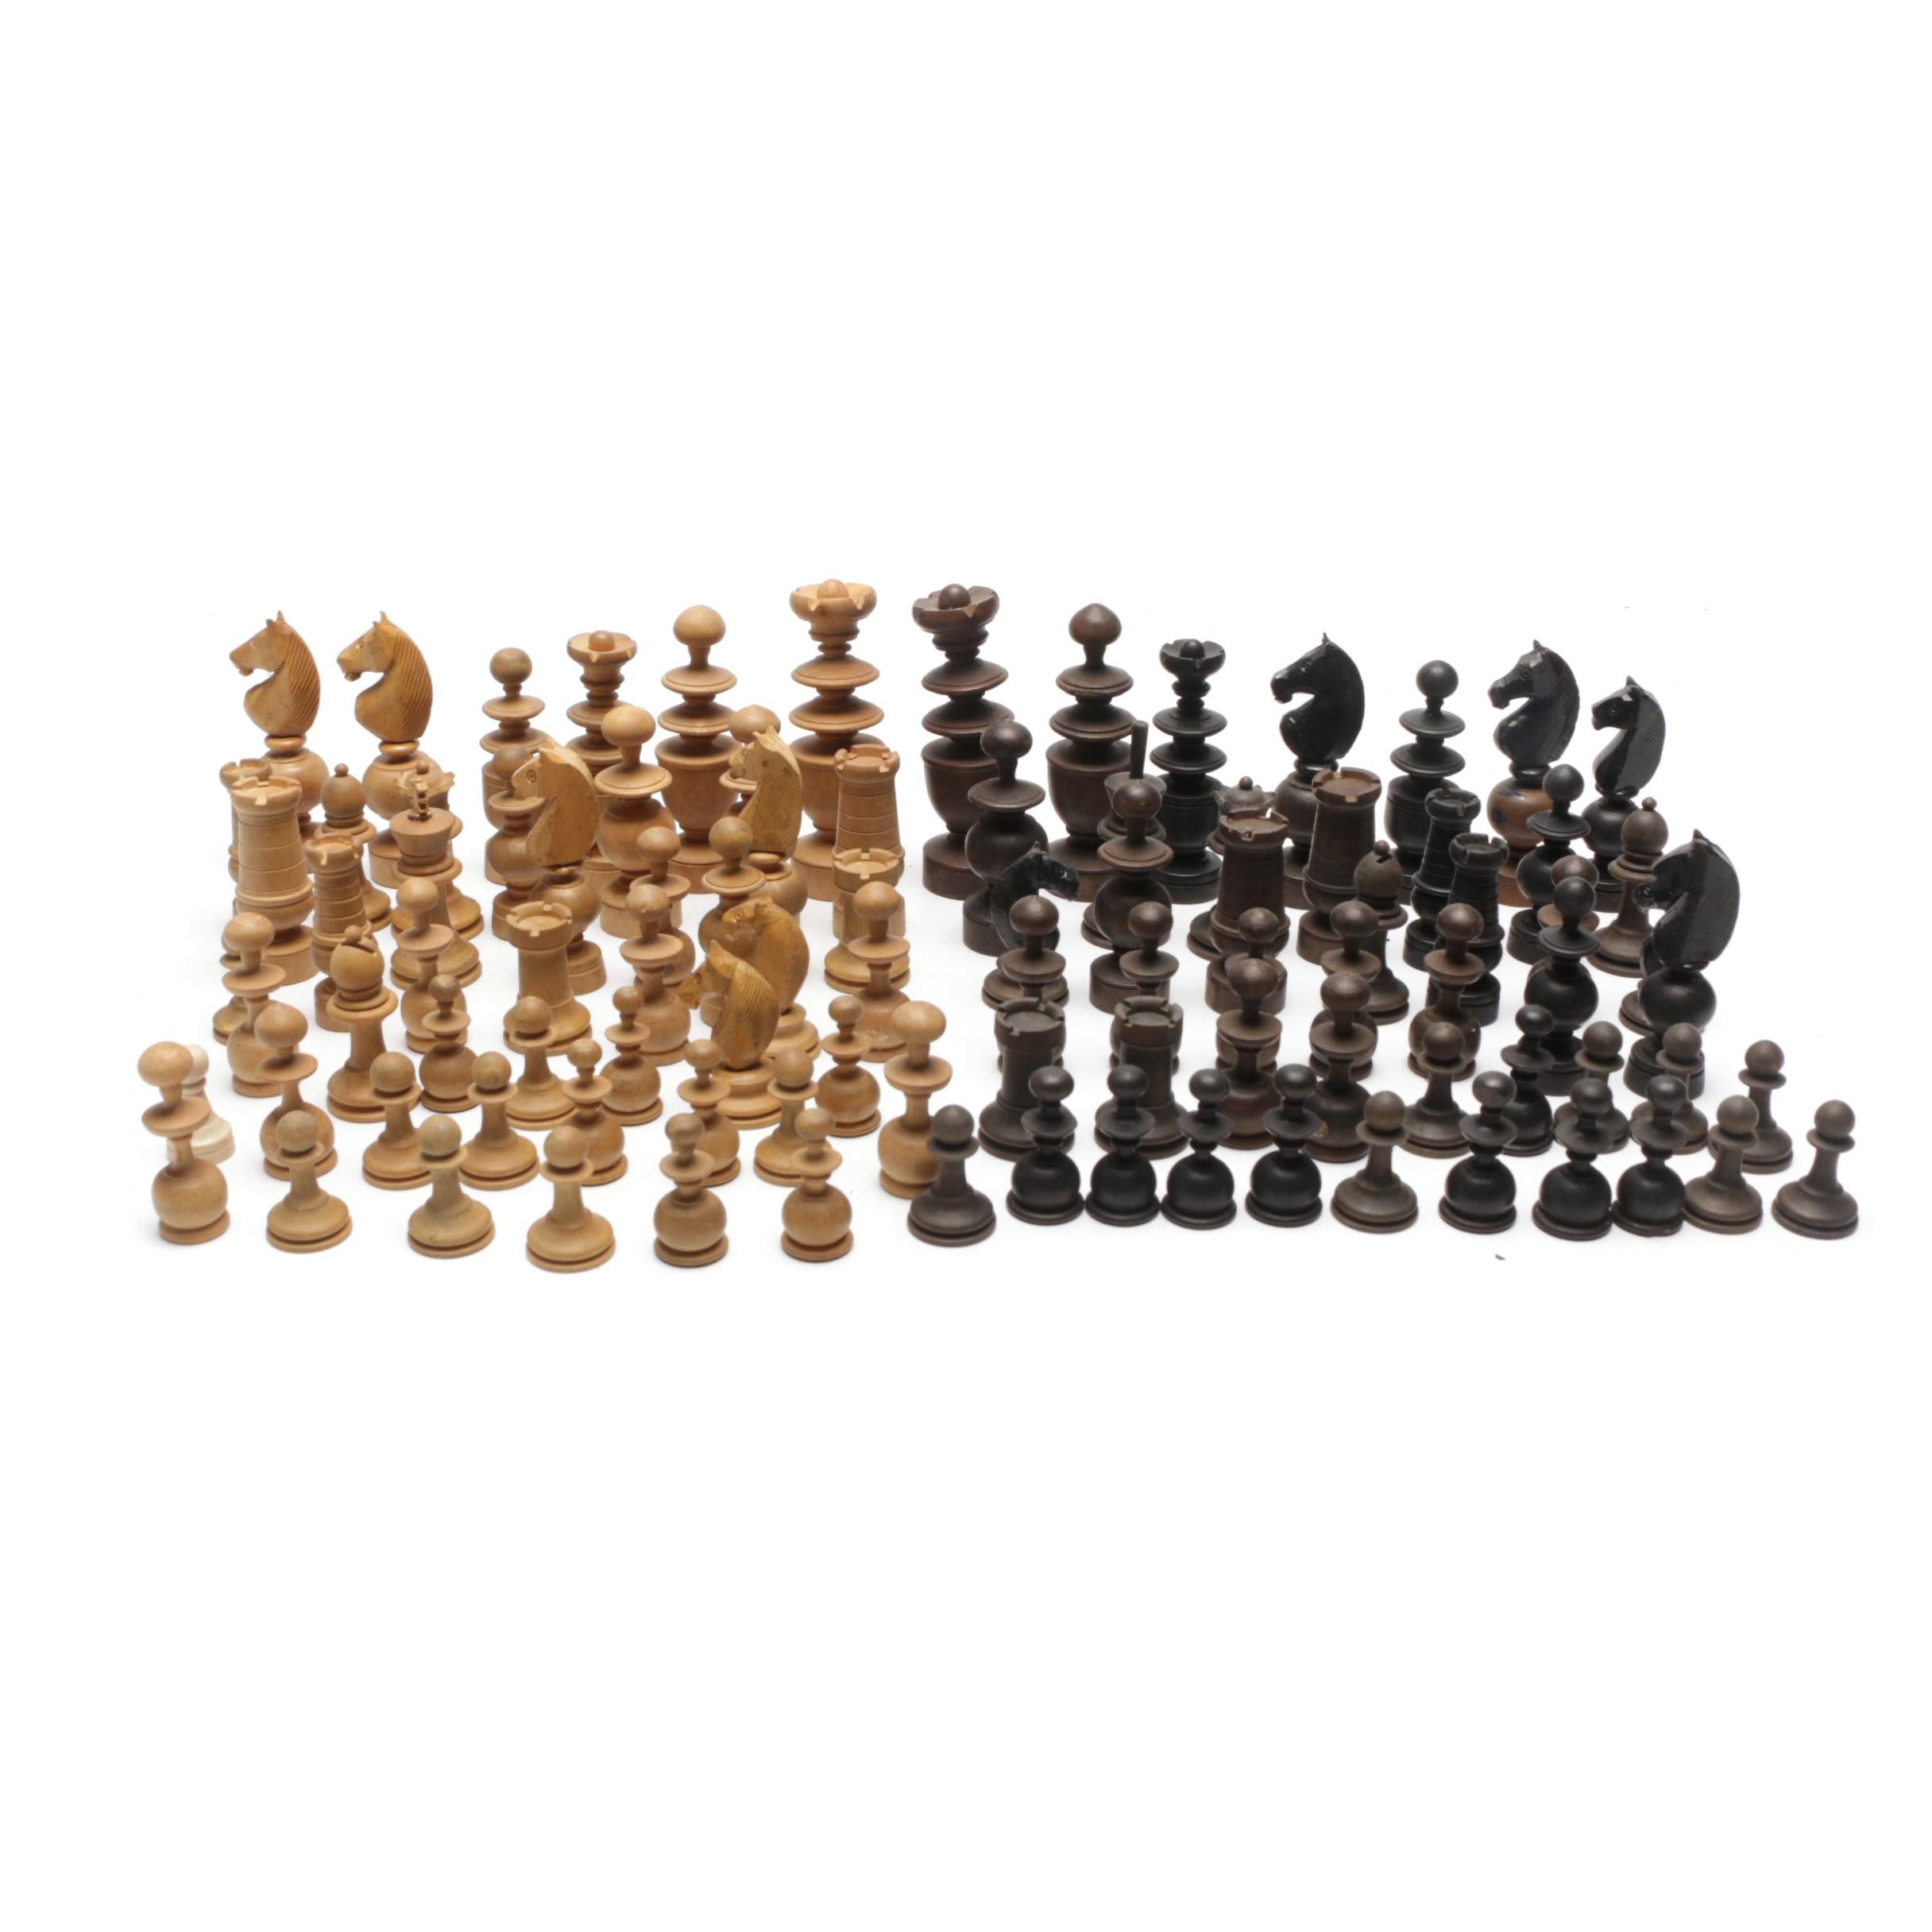 Carved Wood Chess Pieces